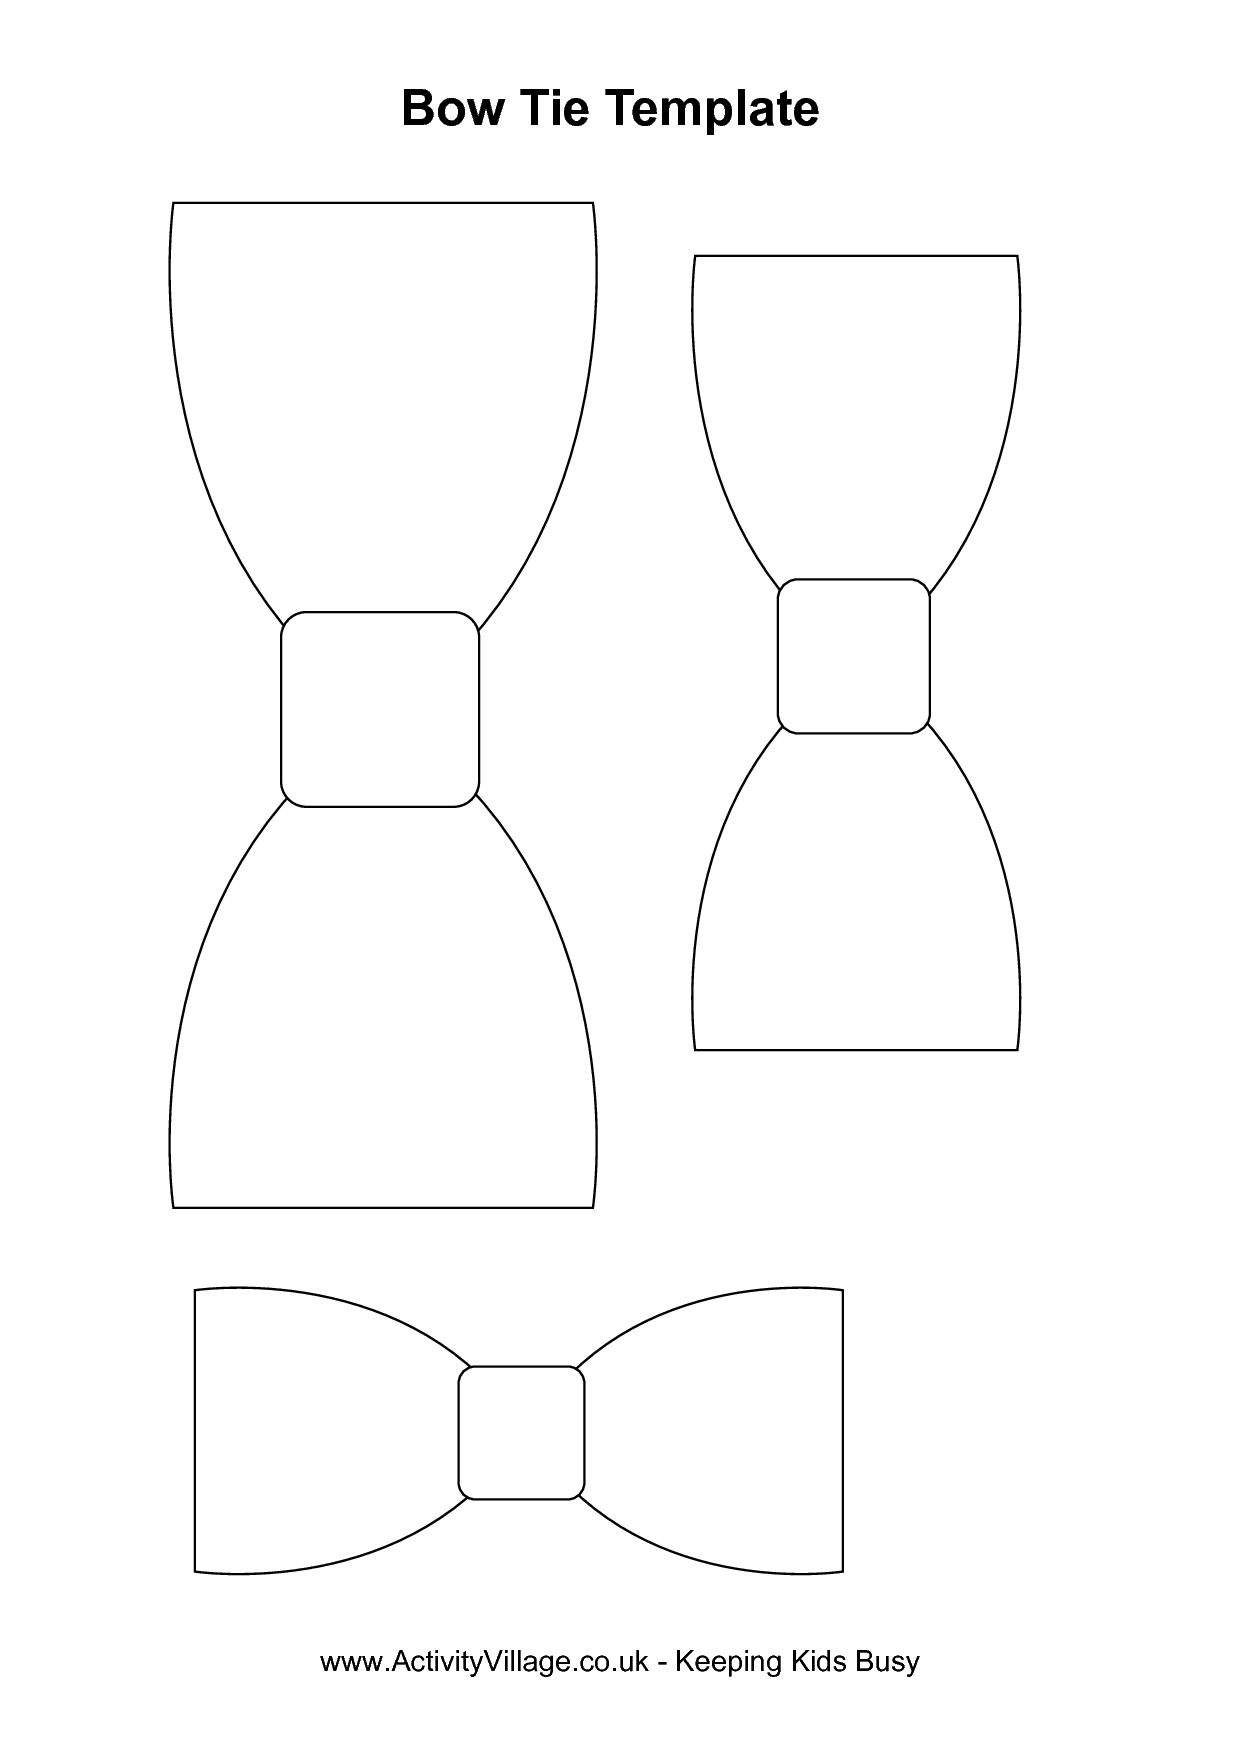 Free Coloring Pages | Mad Scientist Party In 2019 | Baby Shower - Free Bow Tie Template Printable